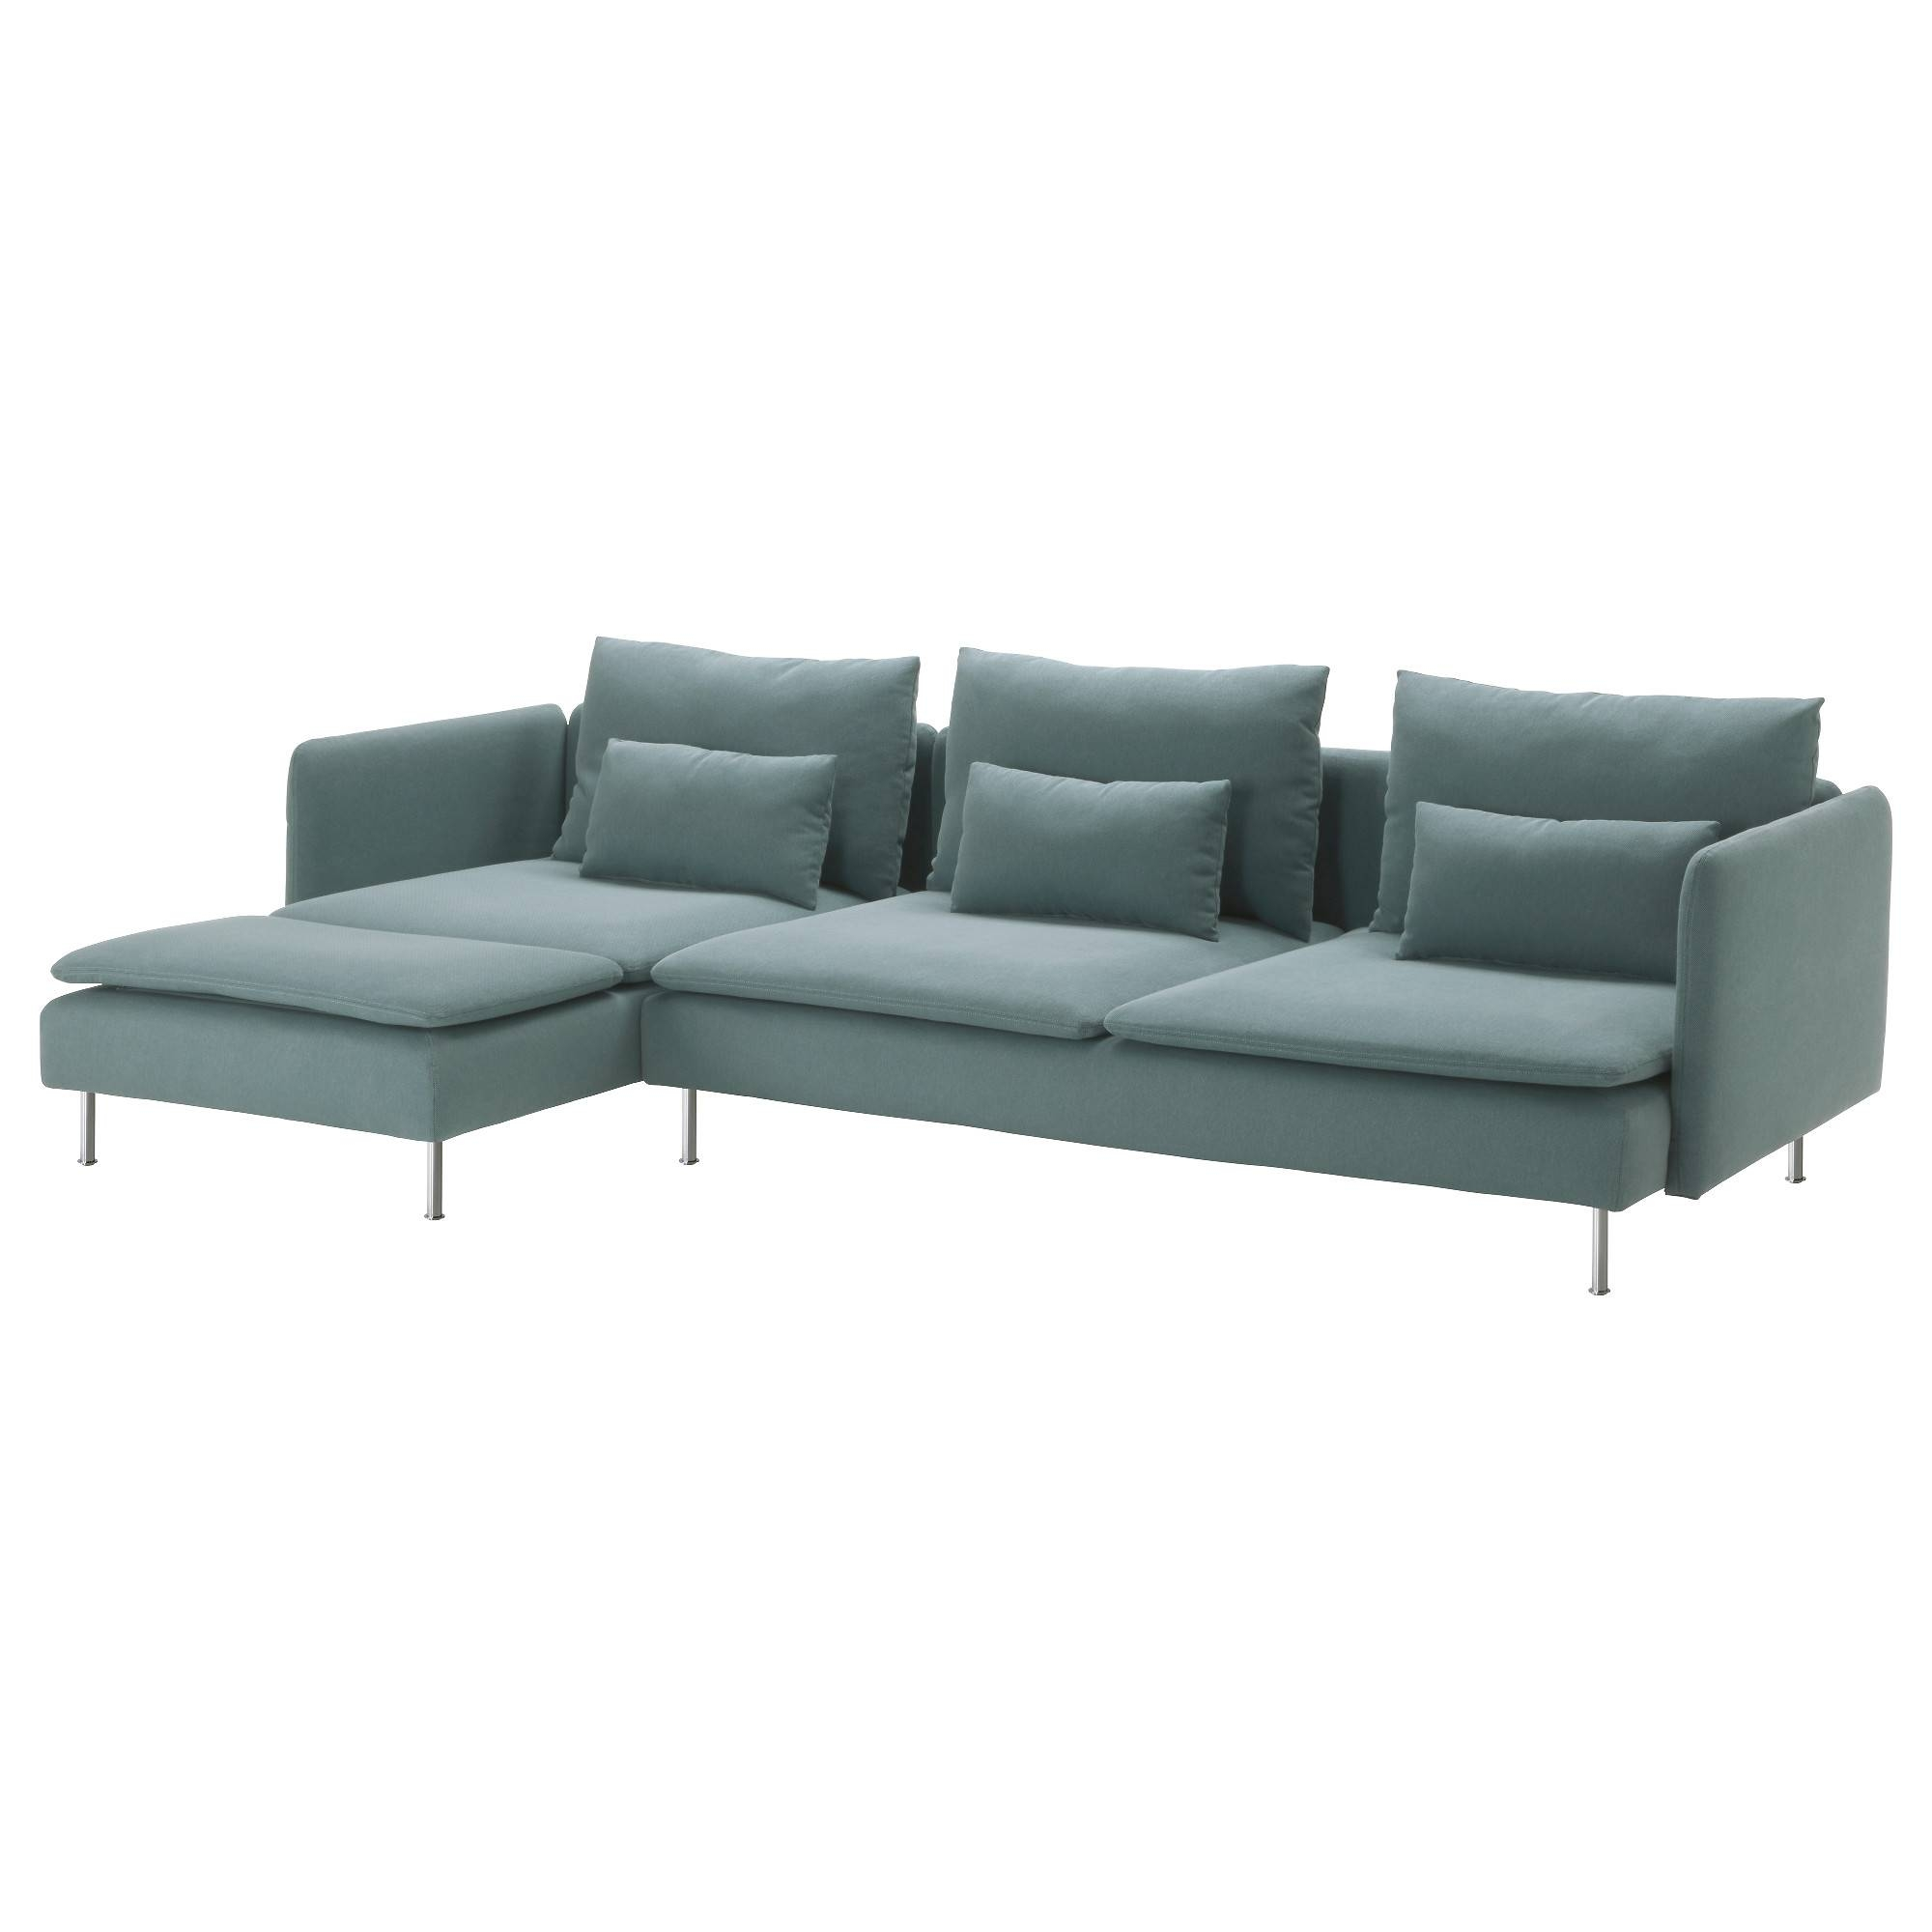 Modular Sofas & Sectionals - Ikea for Sleeper Sofa Sectional Ikea (Image 15 of 25)